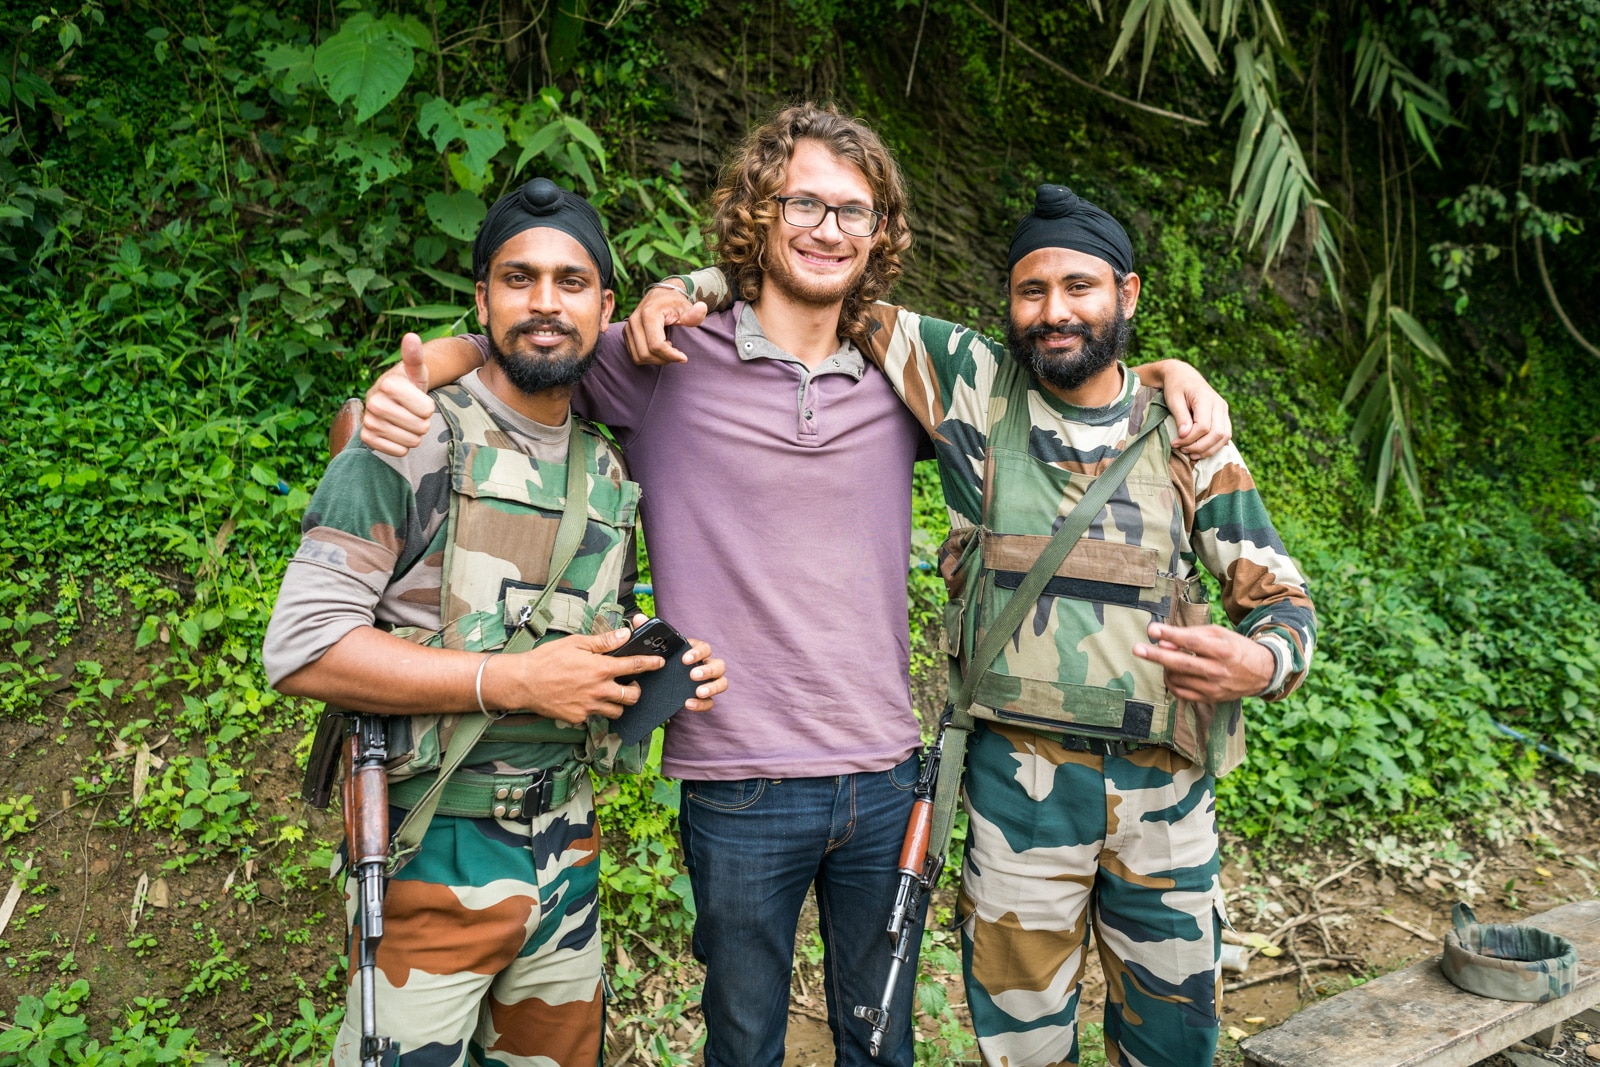 Why you need to travel to Northeast India ASAP - Sebastiaan and army men in Manipur state - Lost With Purpose travel blog